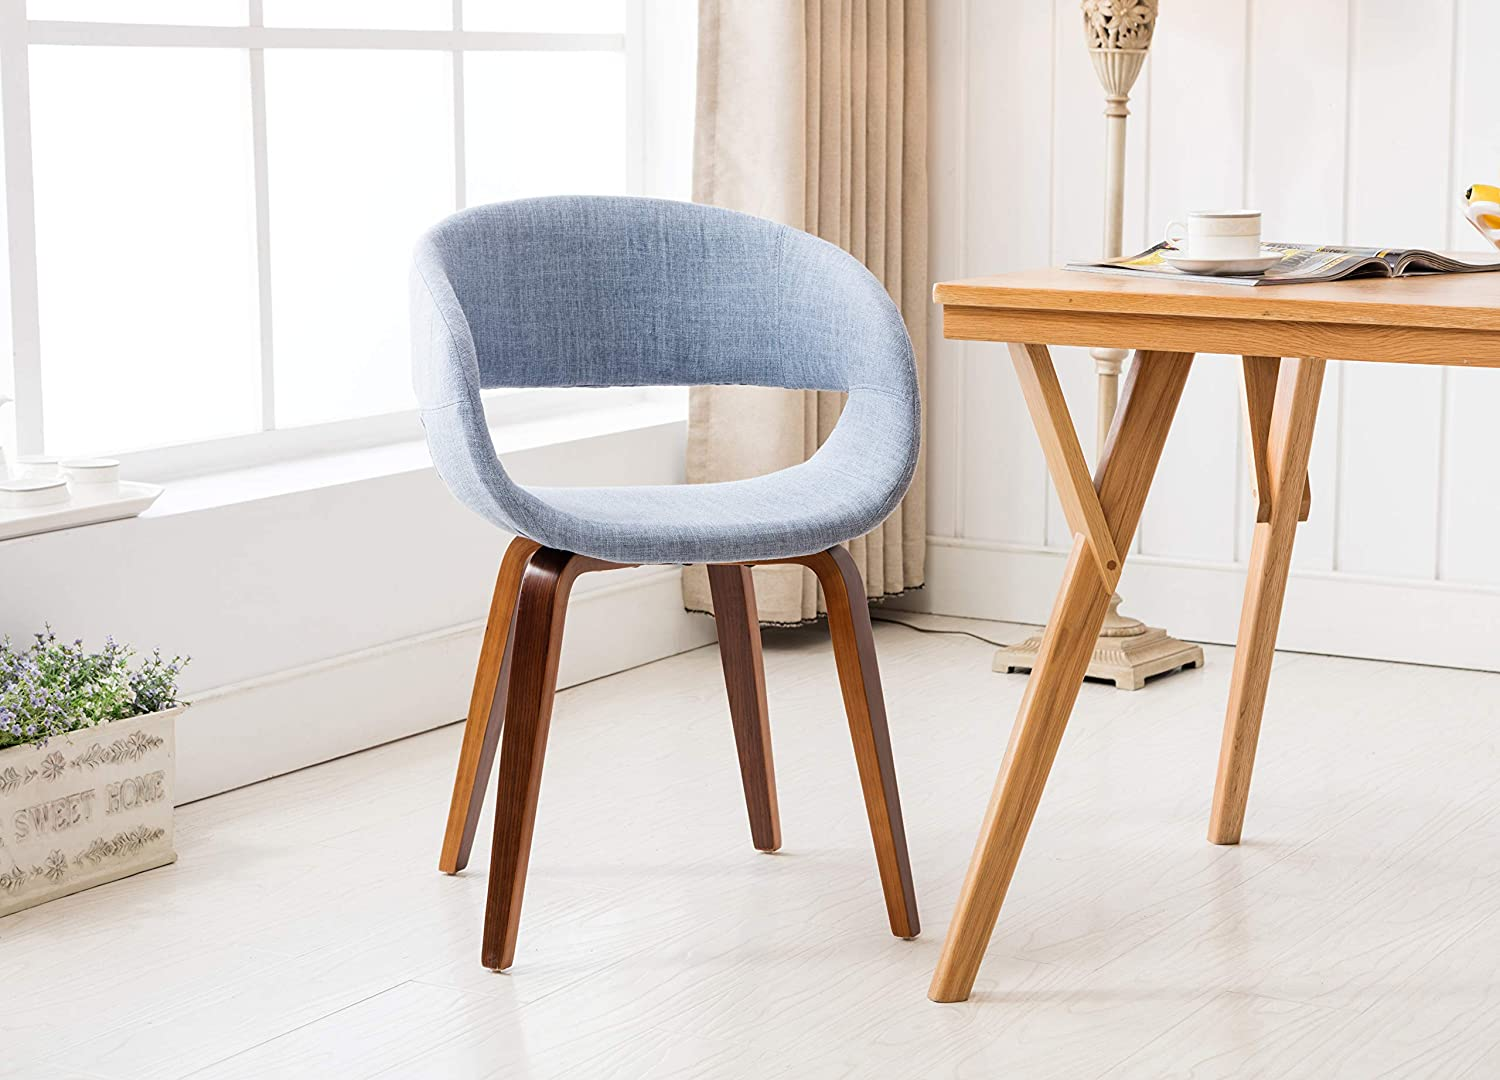 Porthos Home s Mid-century Style Dining Chair With Fabric upholstery, One Size, Blue